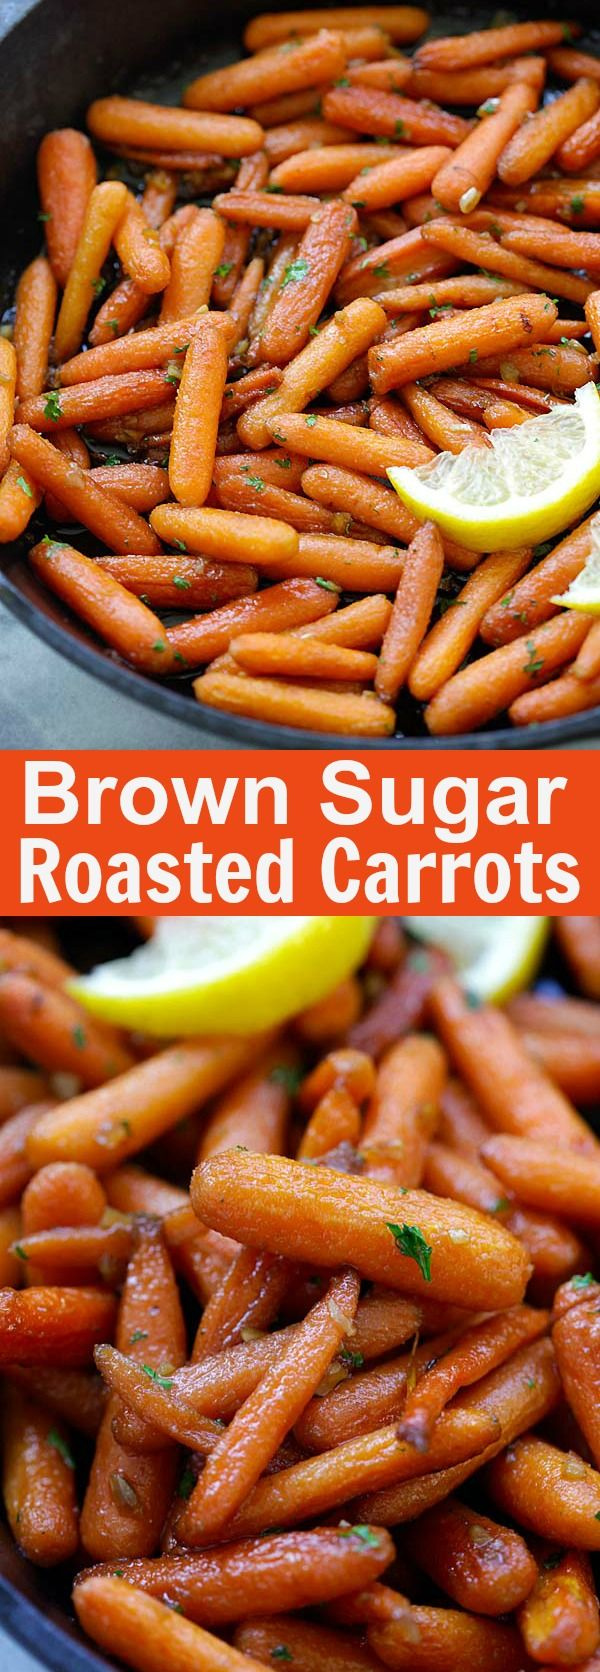 Brown Sugar Roasted Carrots – the sweetest, most tender and buttery roasted carrots recipe ever! Five ingredients and 10 mins active time   rasamalaysia.com